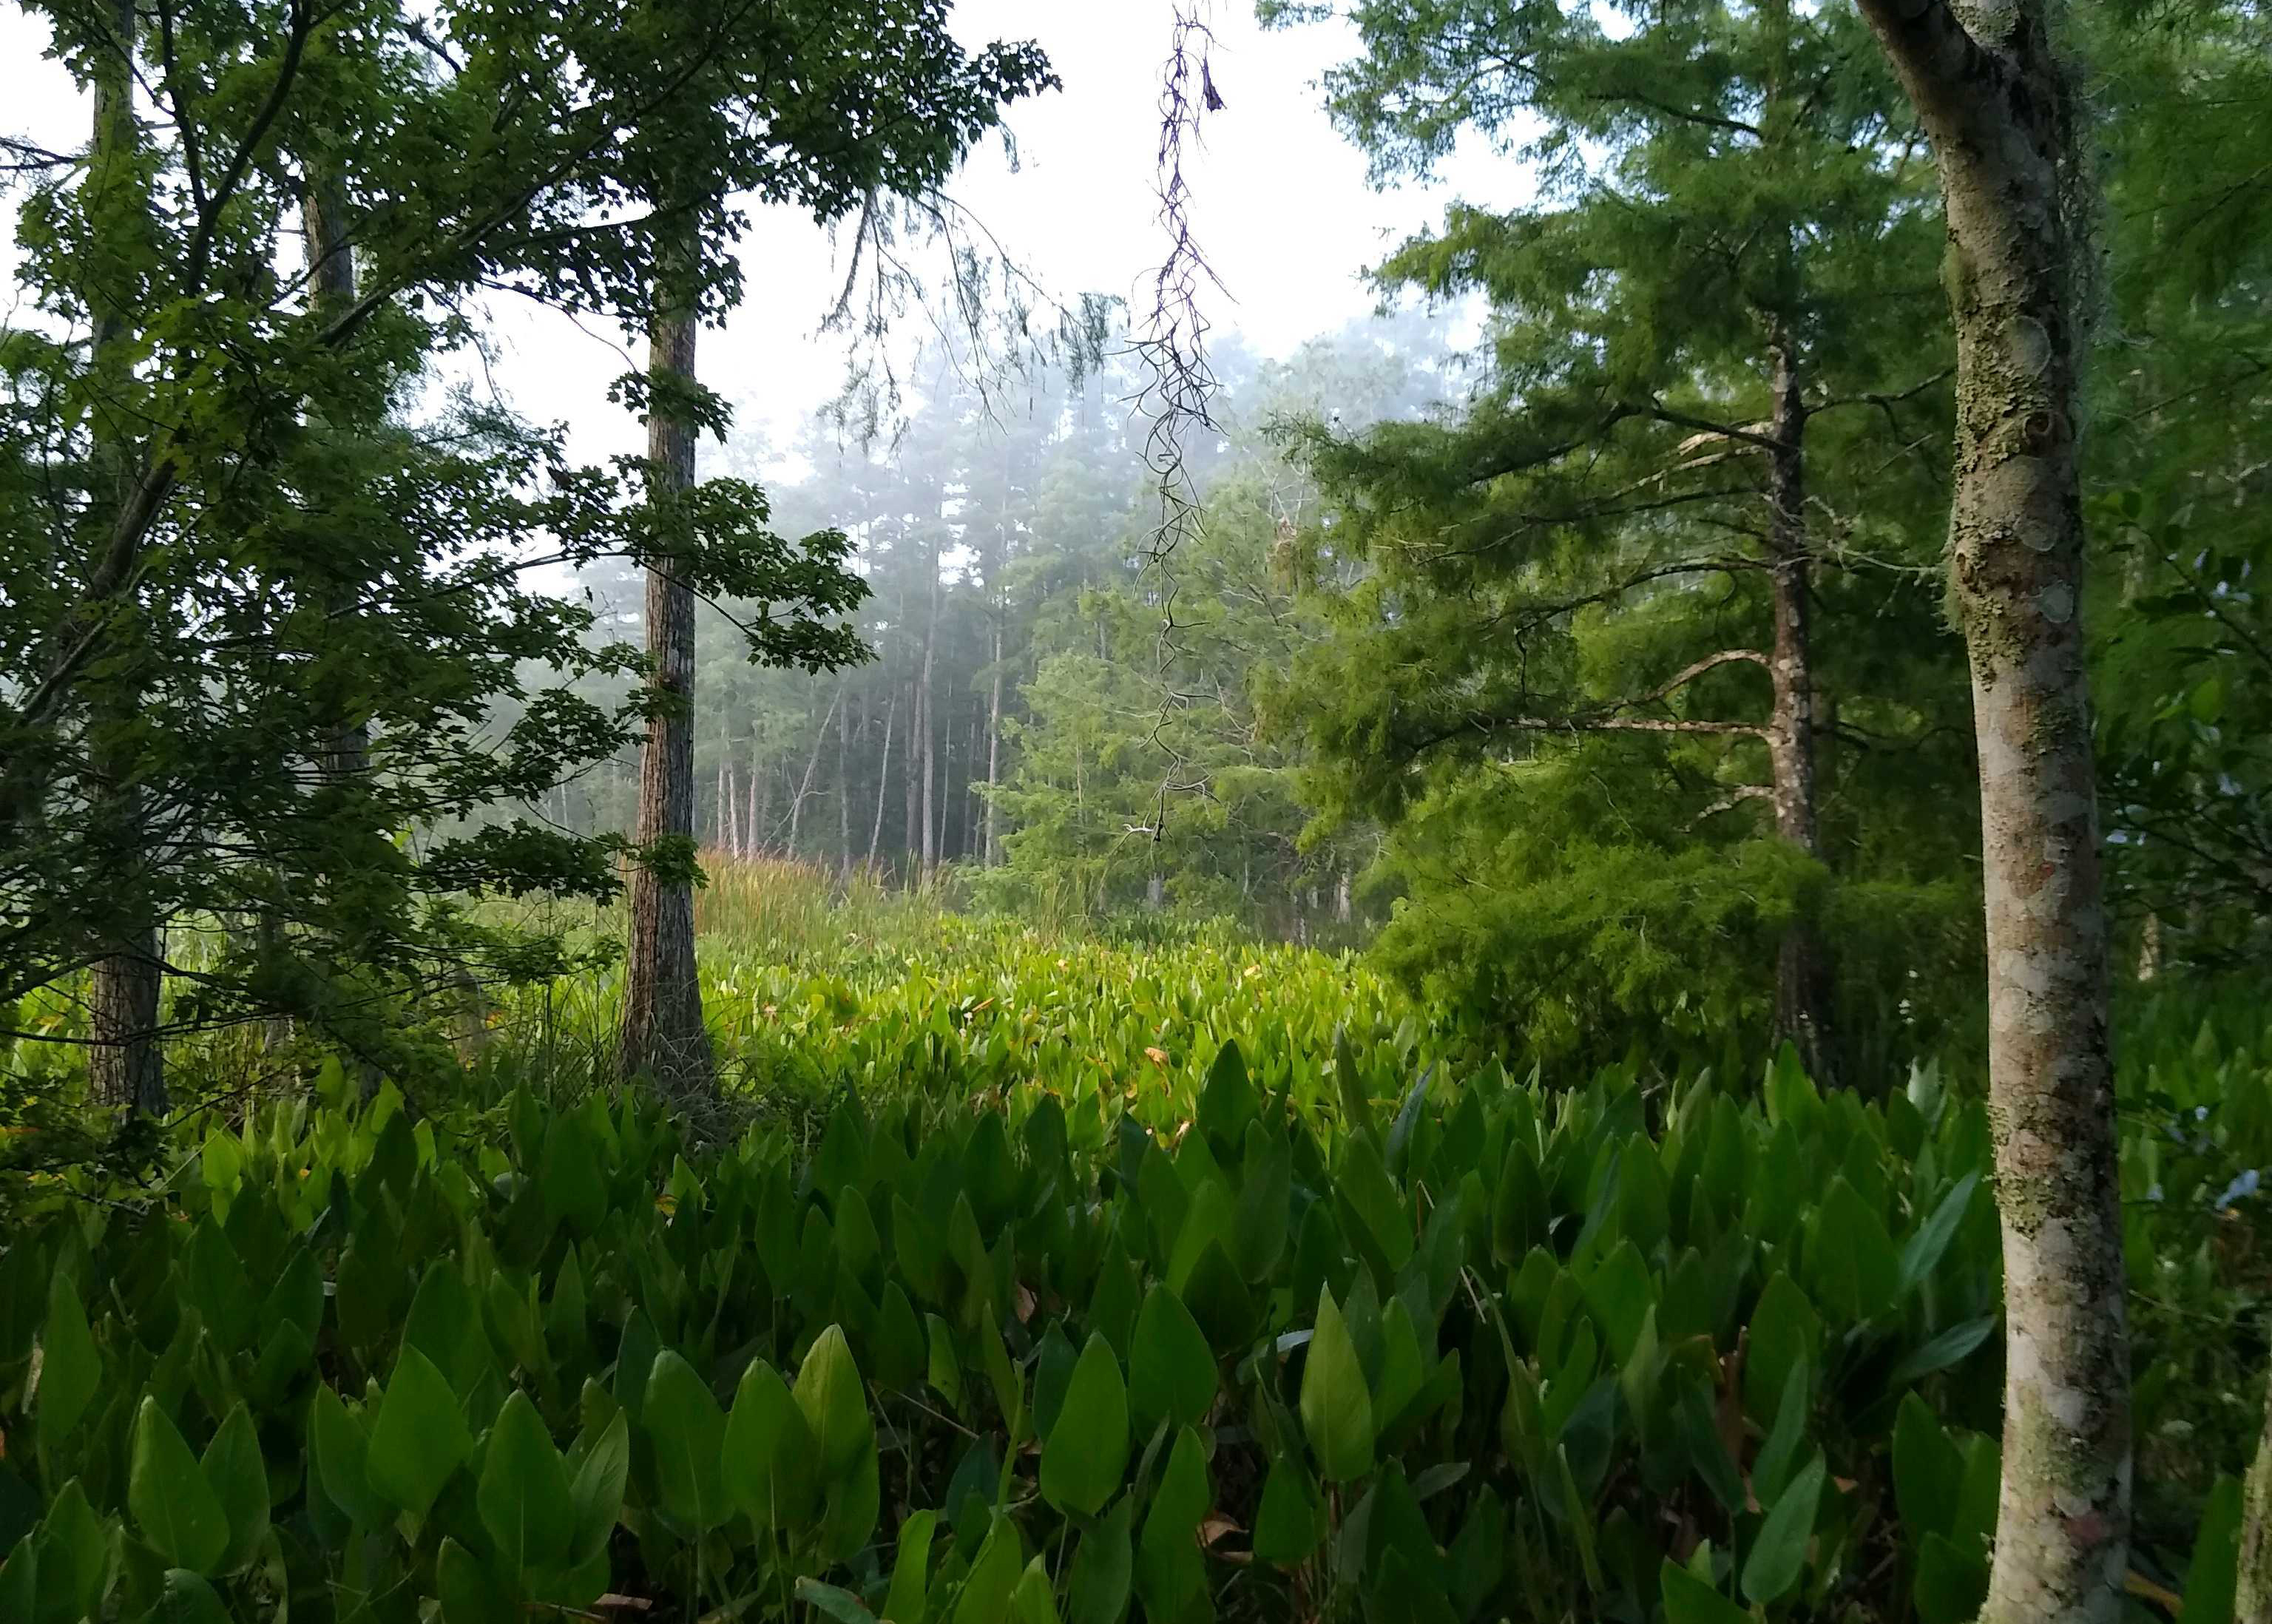 Alligator flags and other wetland plants.